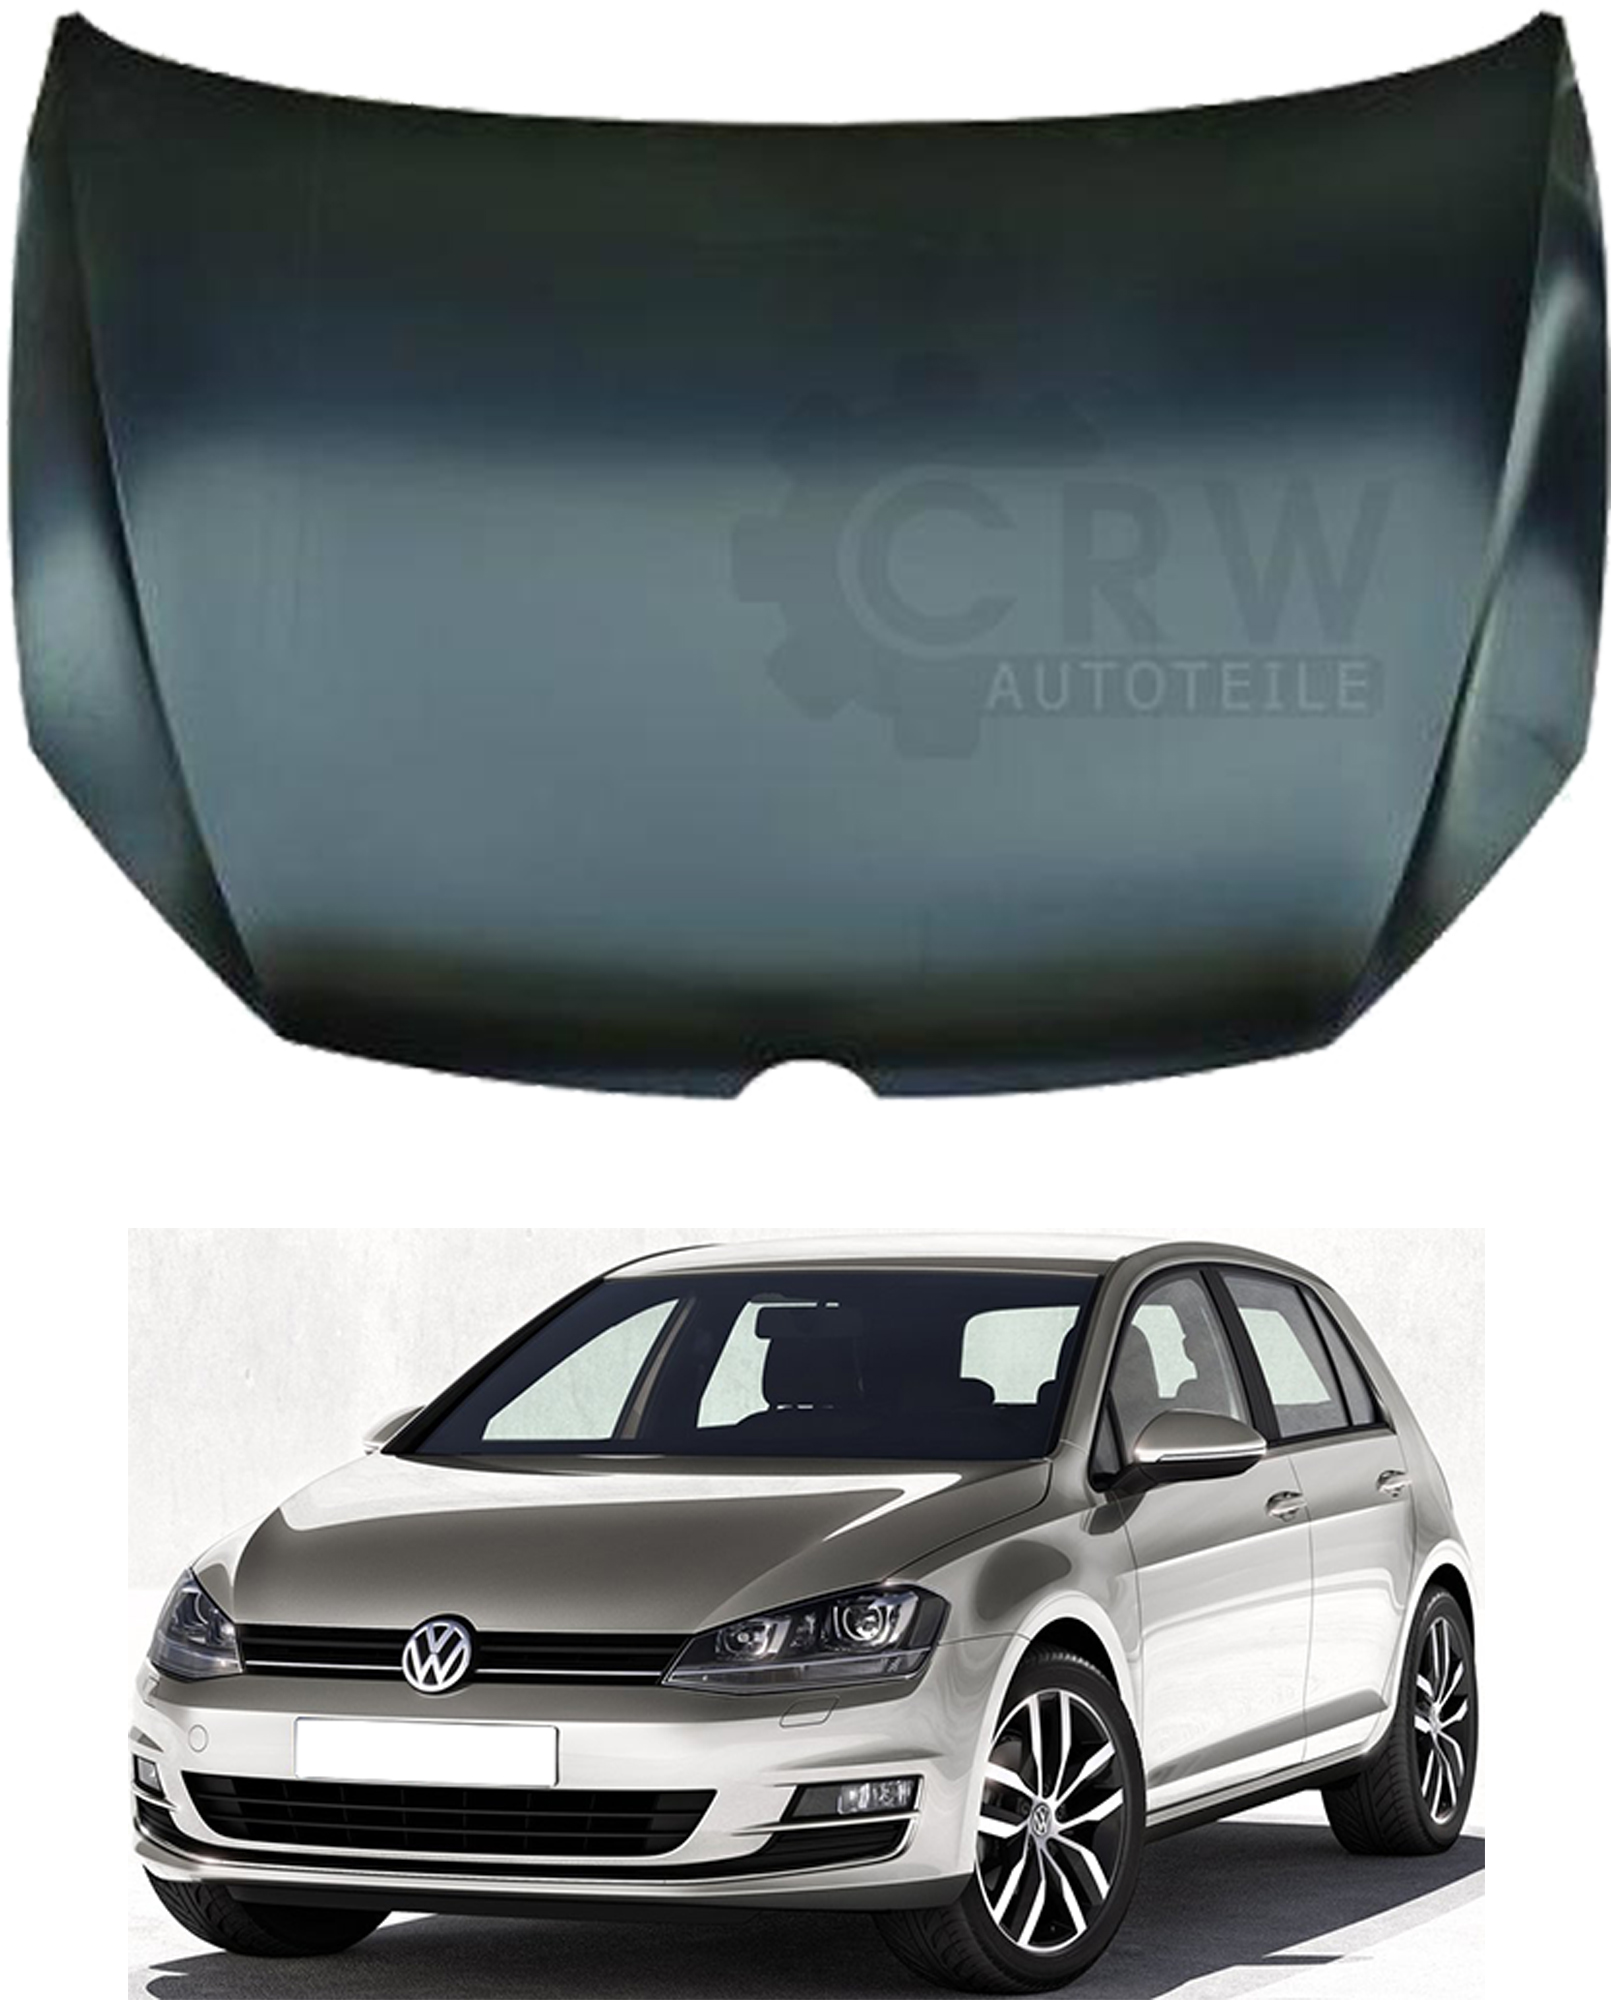 motorhaube bonnet vw golf vii 7 bj 12 typ 5g1 be1. Black Bedroom Furniture Sets. Home Design Ideas